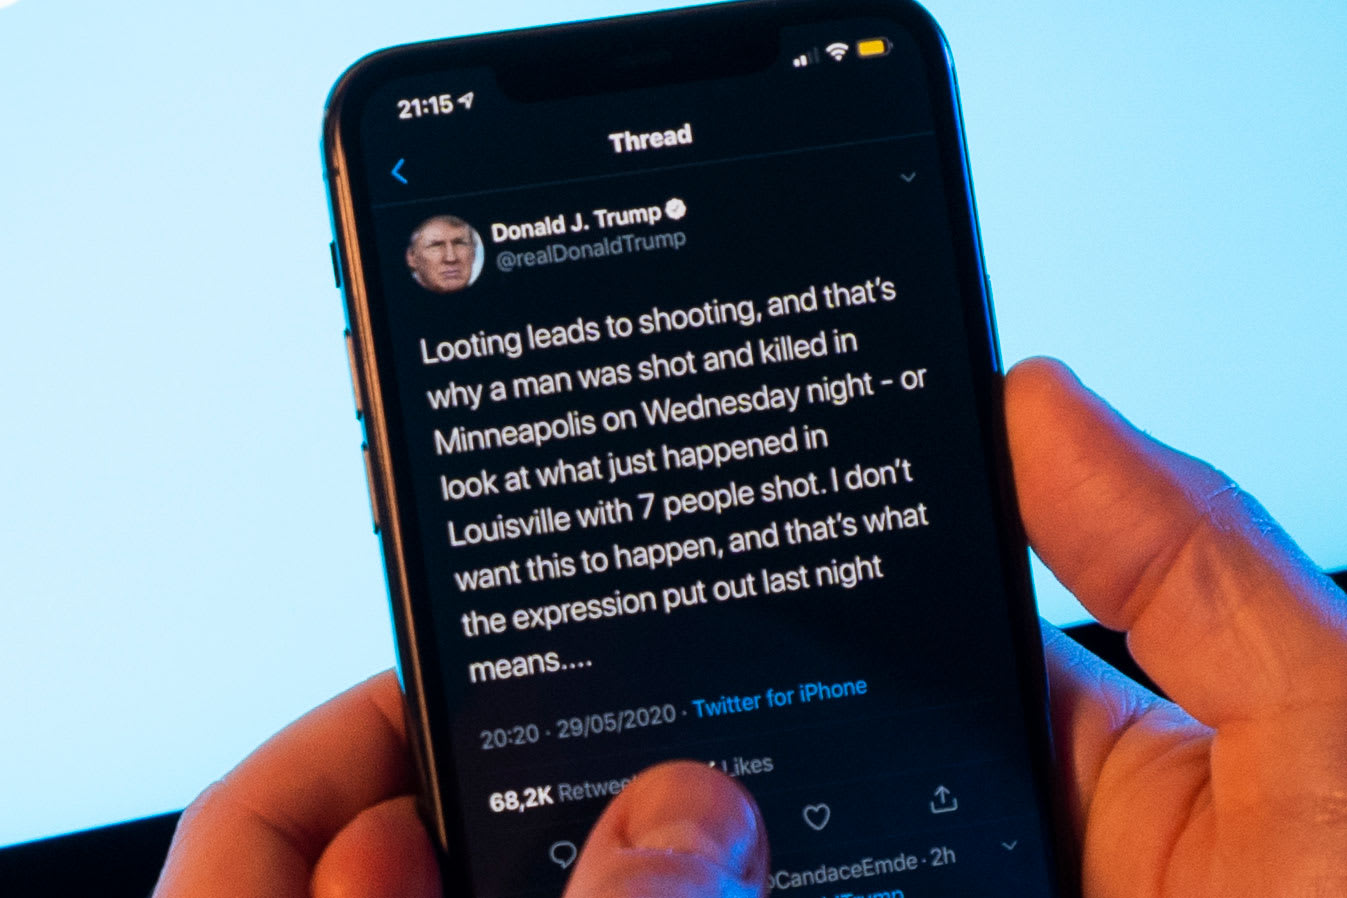 Democrats plan super PAC that will use Trump's own tweets against him